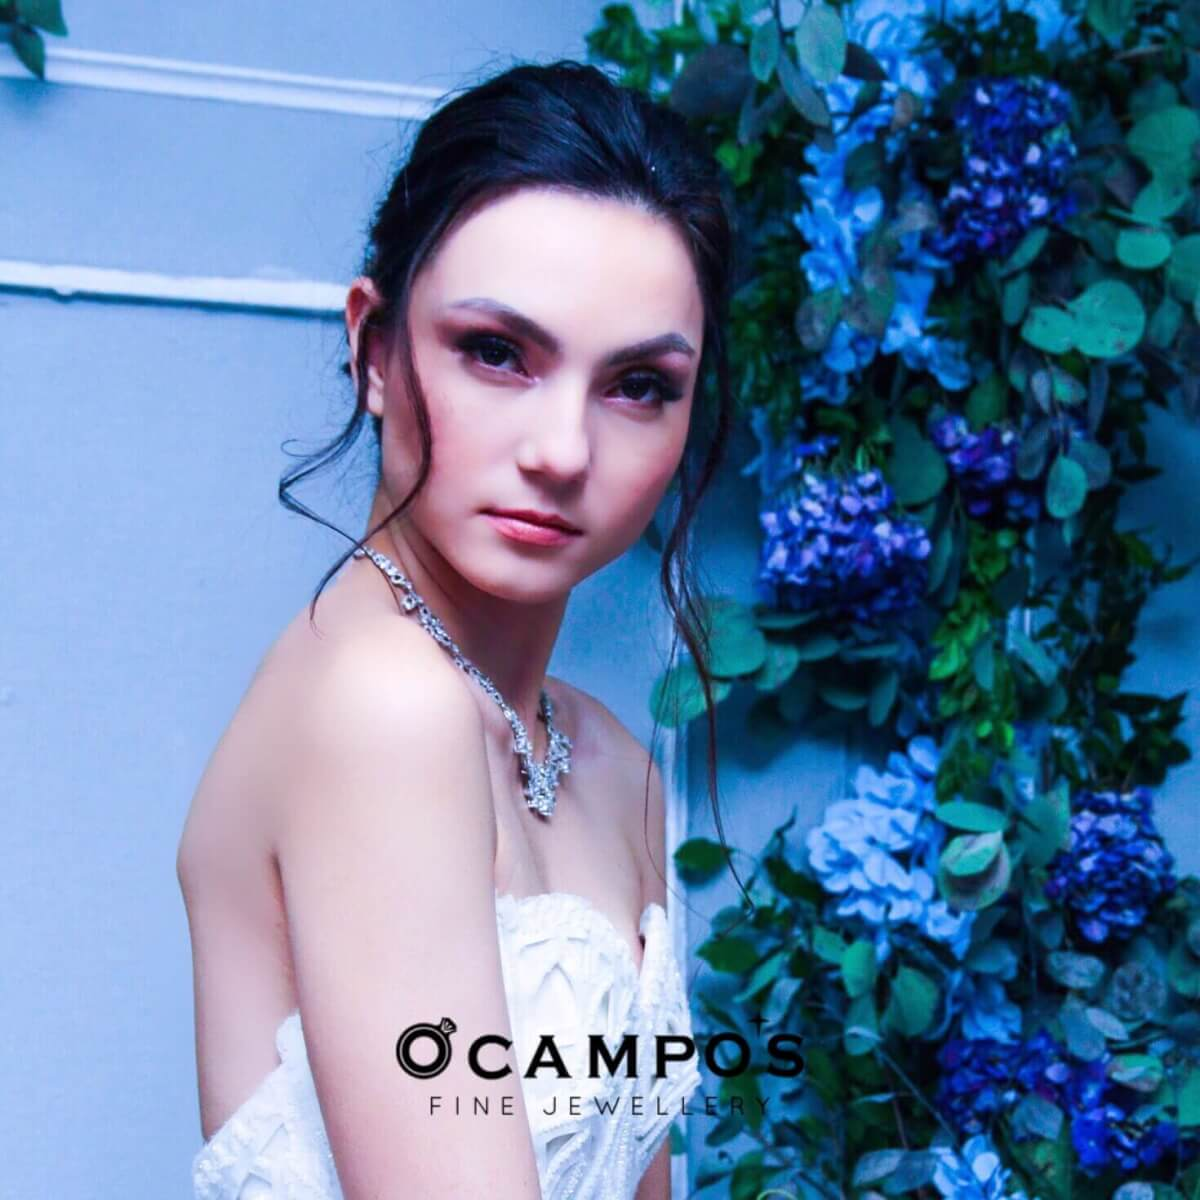 c37e2d35a42 Jasmine Maierhofer is wearing a priced Ocampo s diamond piece from the  Princess Royal Collection.